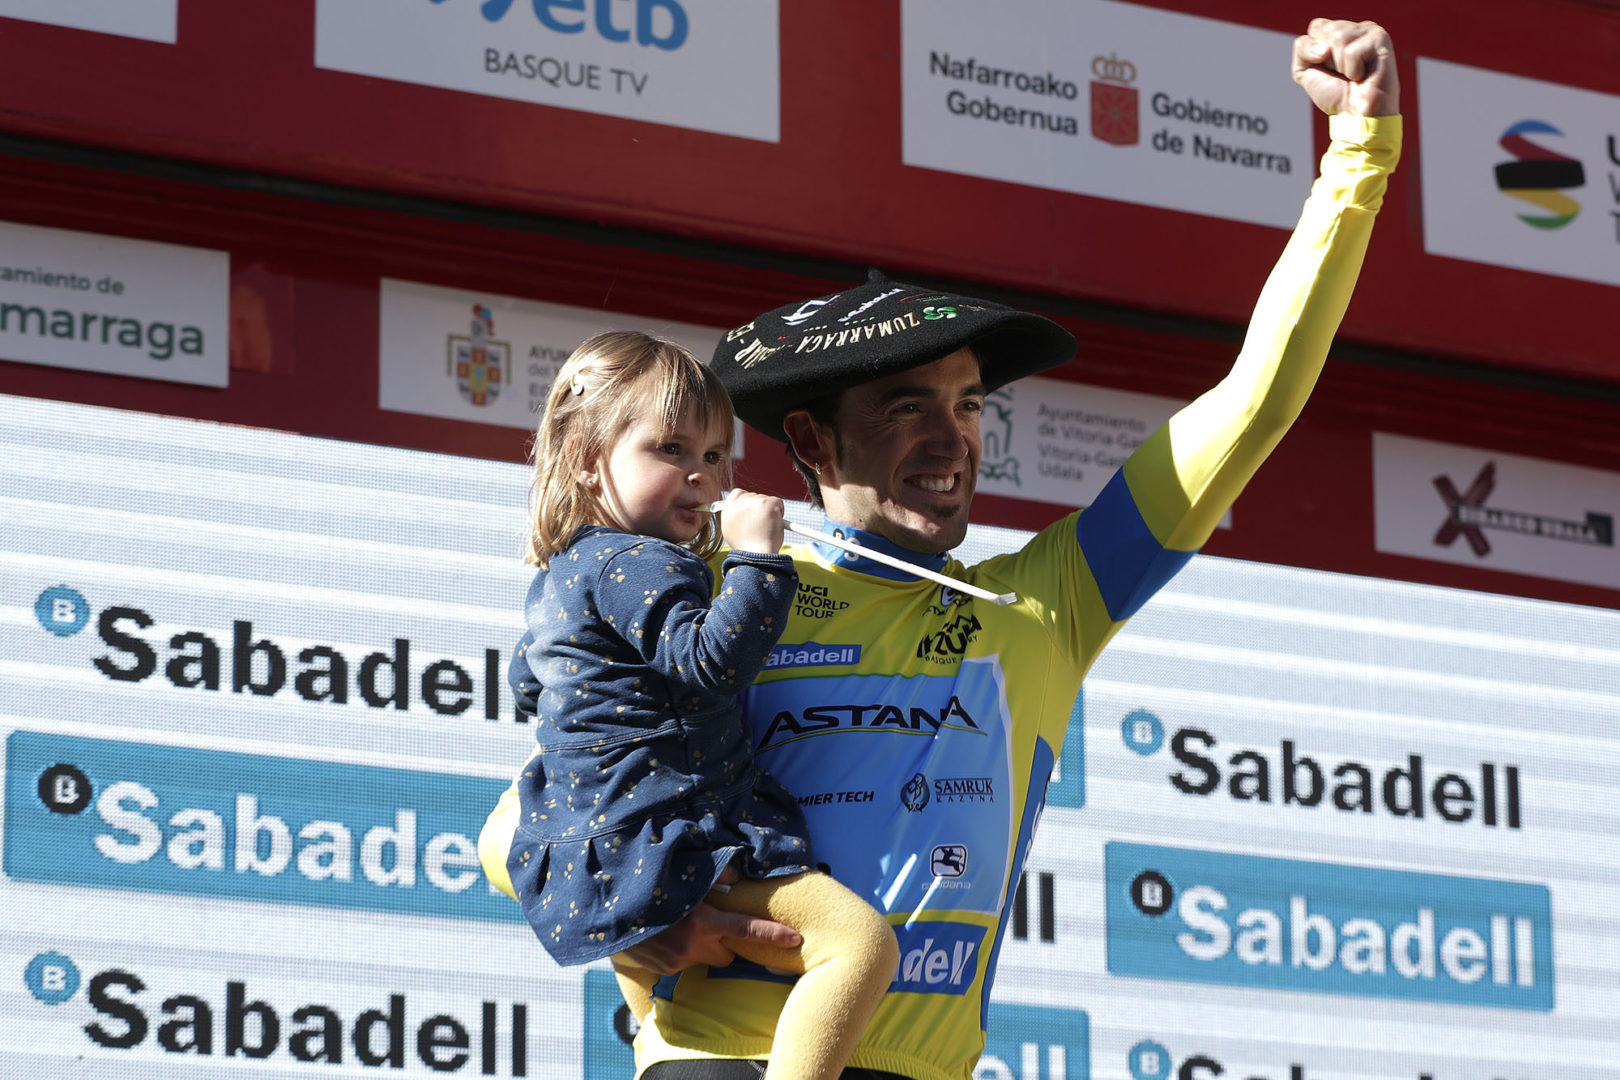 EIBAR, SPAIN - APRIL 13: Podium / Ion Izagirre of Spain and Astana Pro Team Yellow Leader Jersey / Daughter / Txapela Trophy / Celebration / during the 59th Itzulia-Vuelta Ciclista Pais Vasco 2019, Stage 6 a 118,2km stage from Eibar to Eibar / VPV / @ehitzulia / on April 13, 2019 in Eibar, Spain. (Photo by Gonzalo Arroyo Moreno/Getty Images)